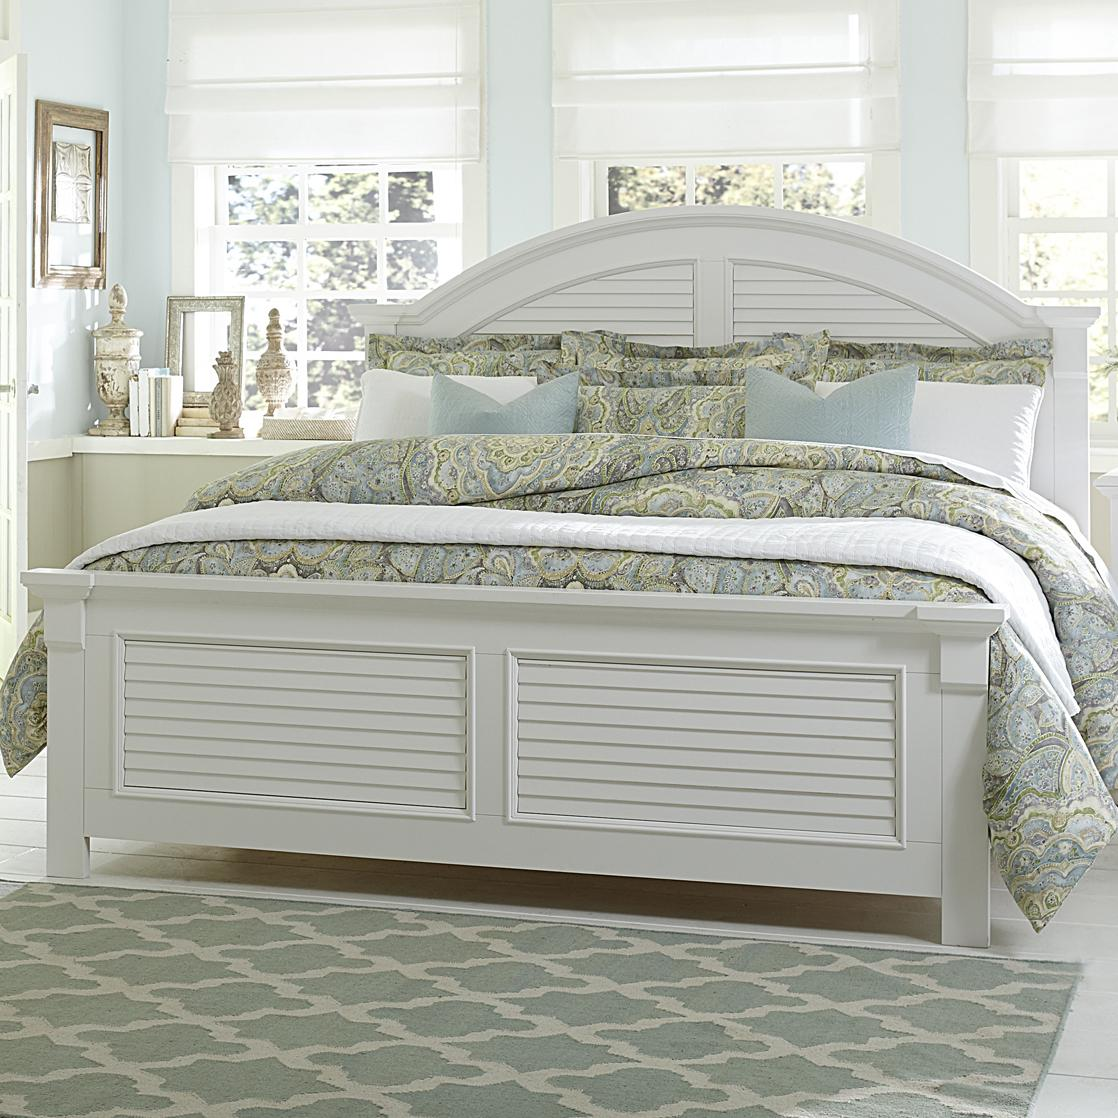 Liberty Furniture Summer House King Panel Bed - Item Number: 607-BR-KPB